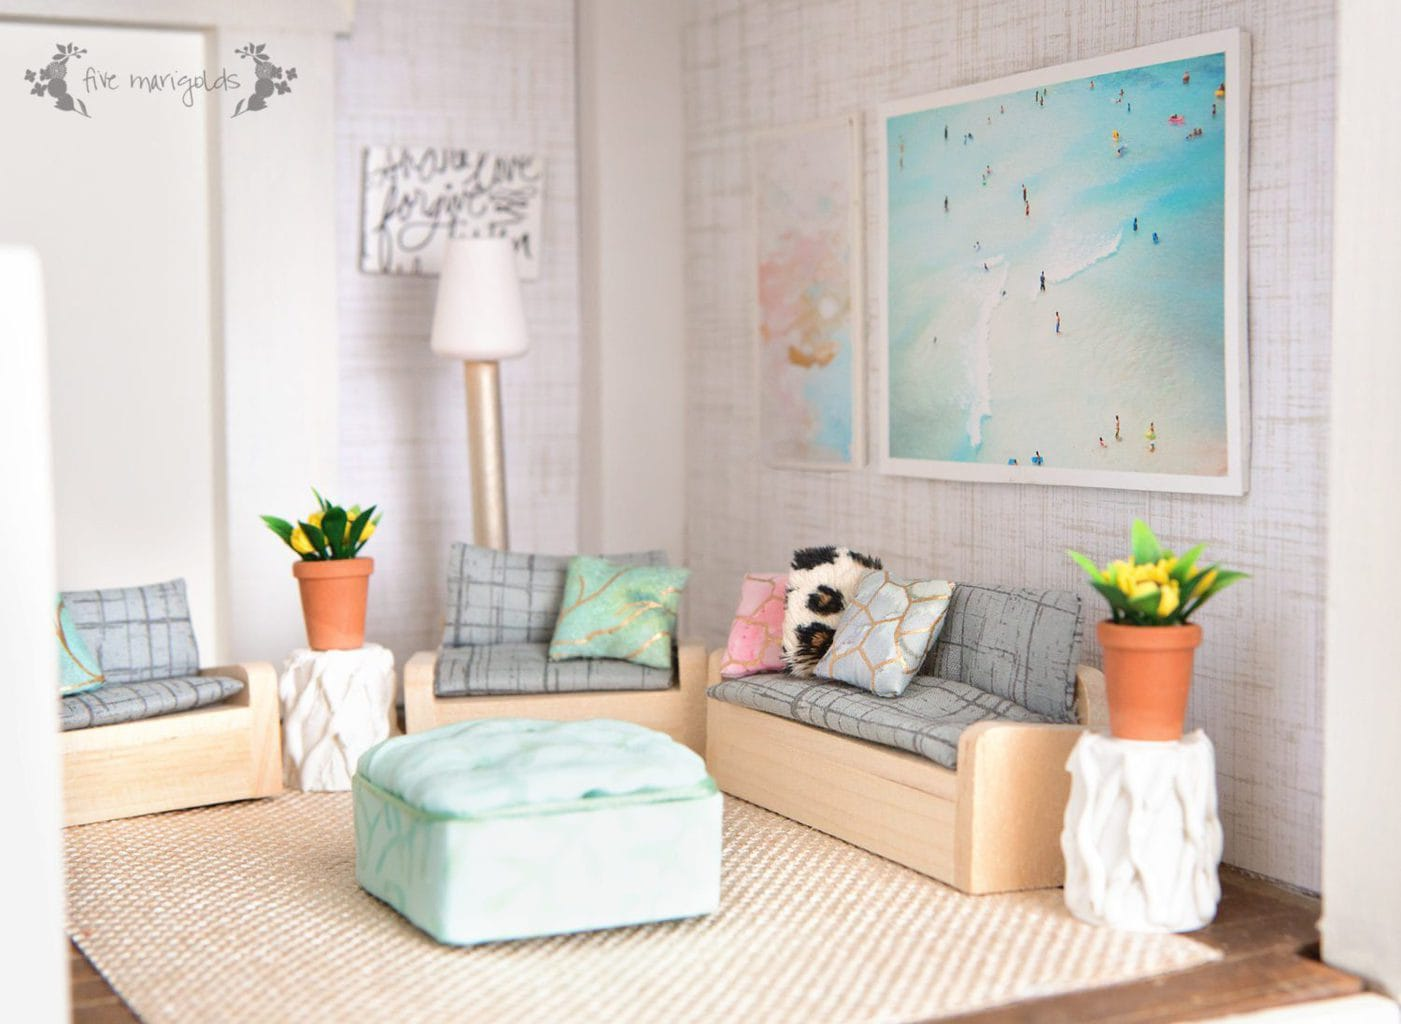 Vintage Dollhouse Remodel: Living Room for less than $10| www.fivemarigolds.com